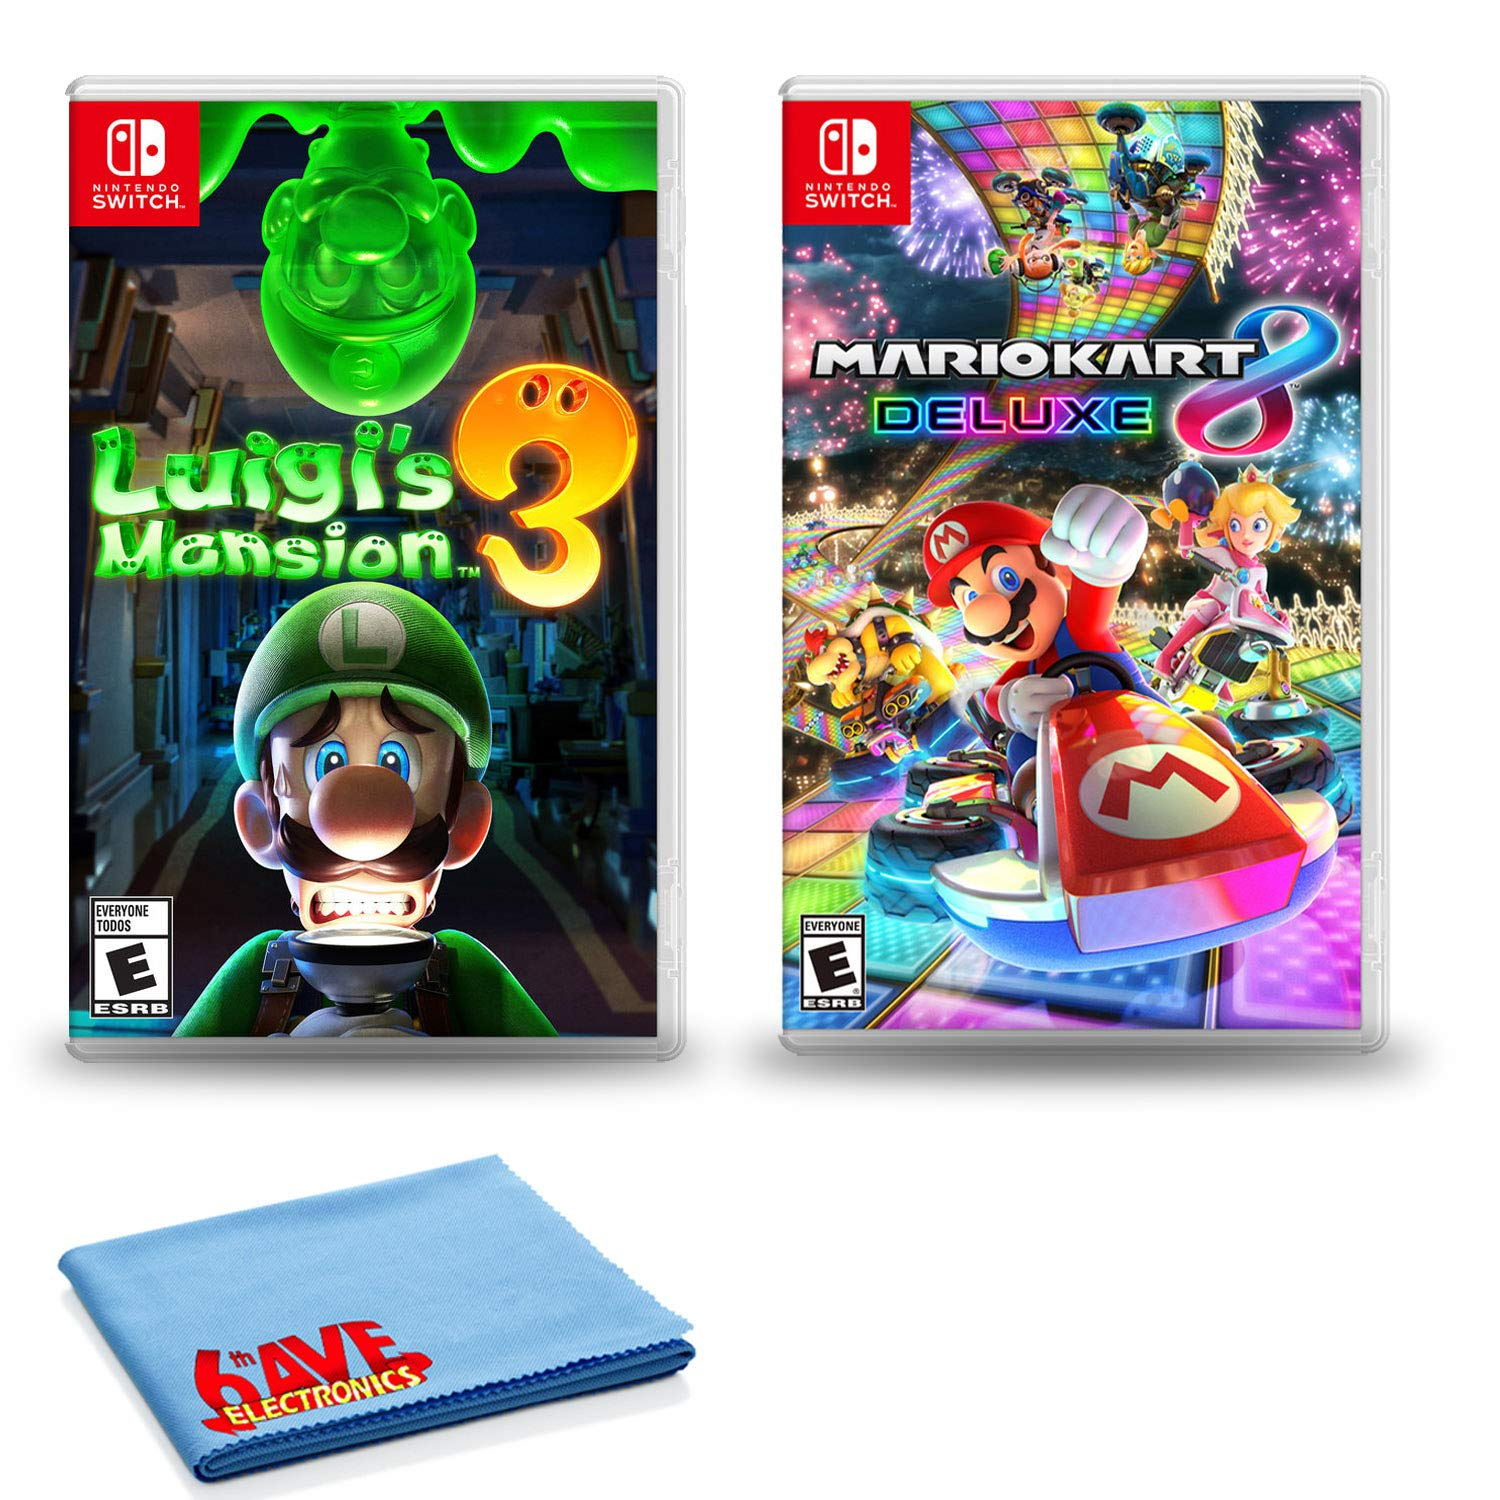 Nintendo Switch Luigi's Mansion 3 Bundle Delux Mario 8 Ranking Outlet ☆ Free Shipping integrated 1st place with Kart